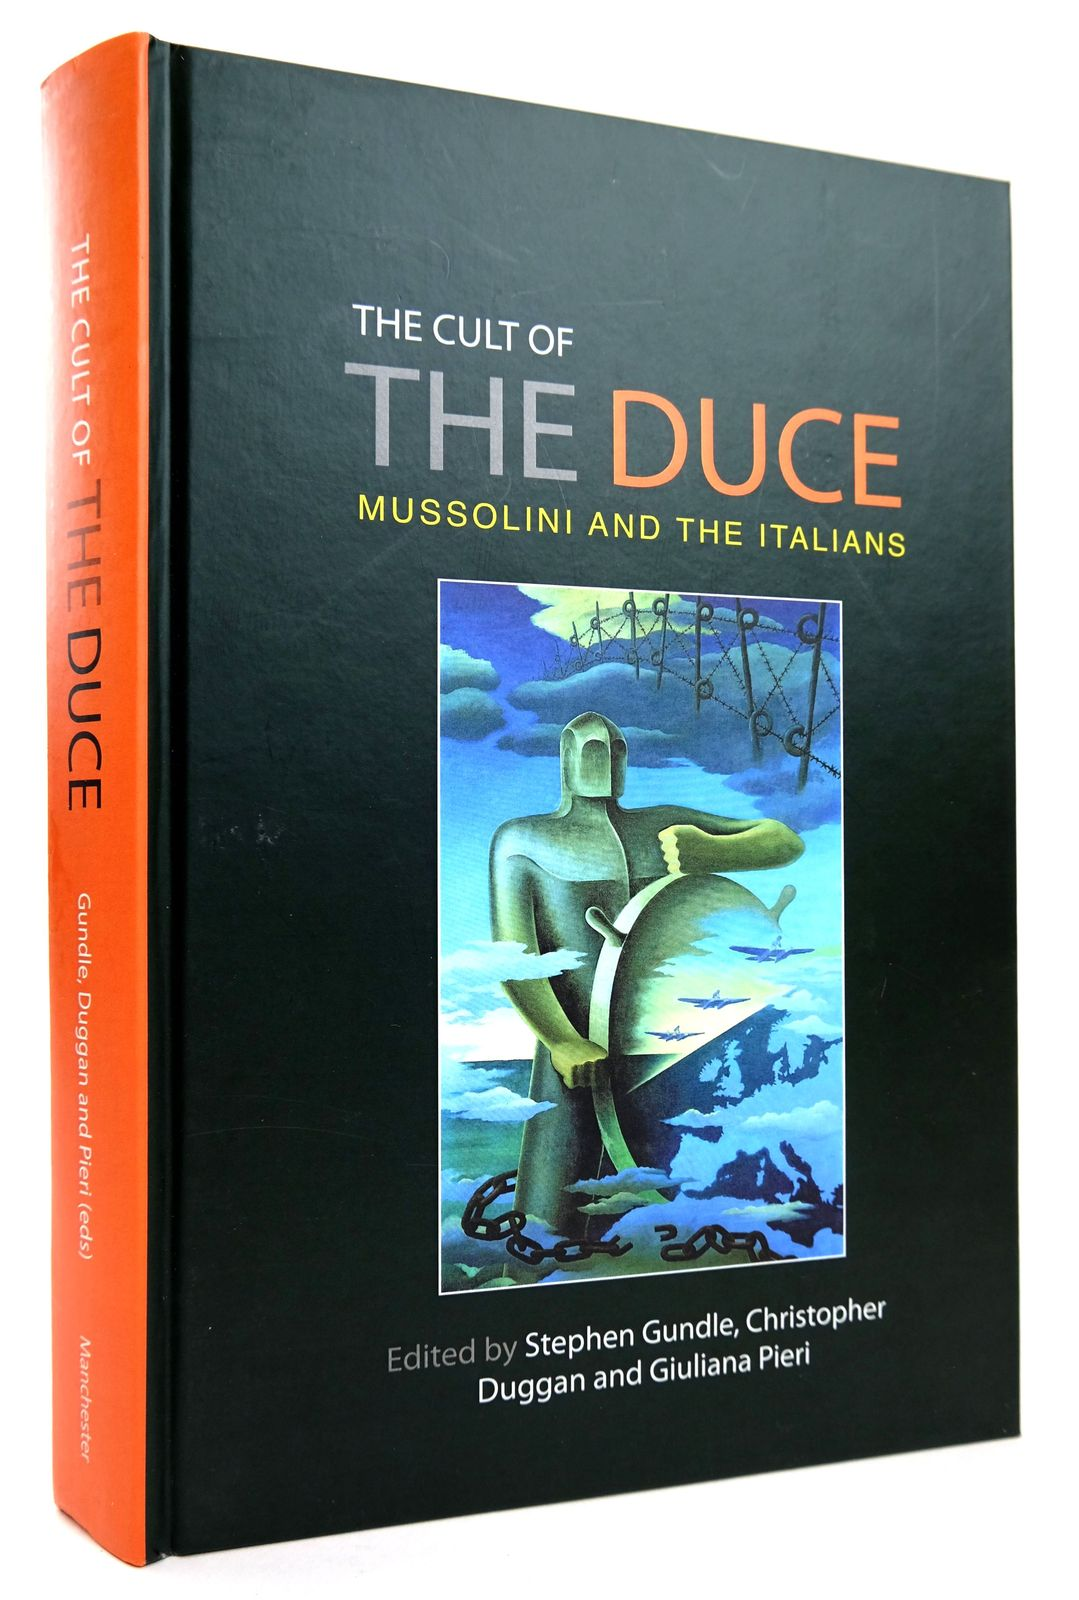 Photo of THE CULT OF THE DUCE: MUSSOLINI AND THE ITALIANS written by Gundle, Stephen Duggan, Christopher Pieri, Giuliana published by Manchester University Press (STOCK CODE: 1818767)  for sale by Stella & Rose's Books